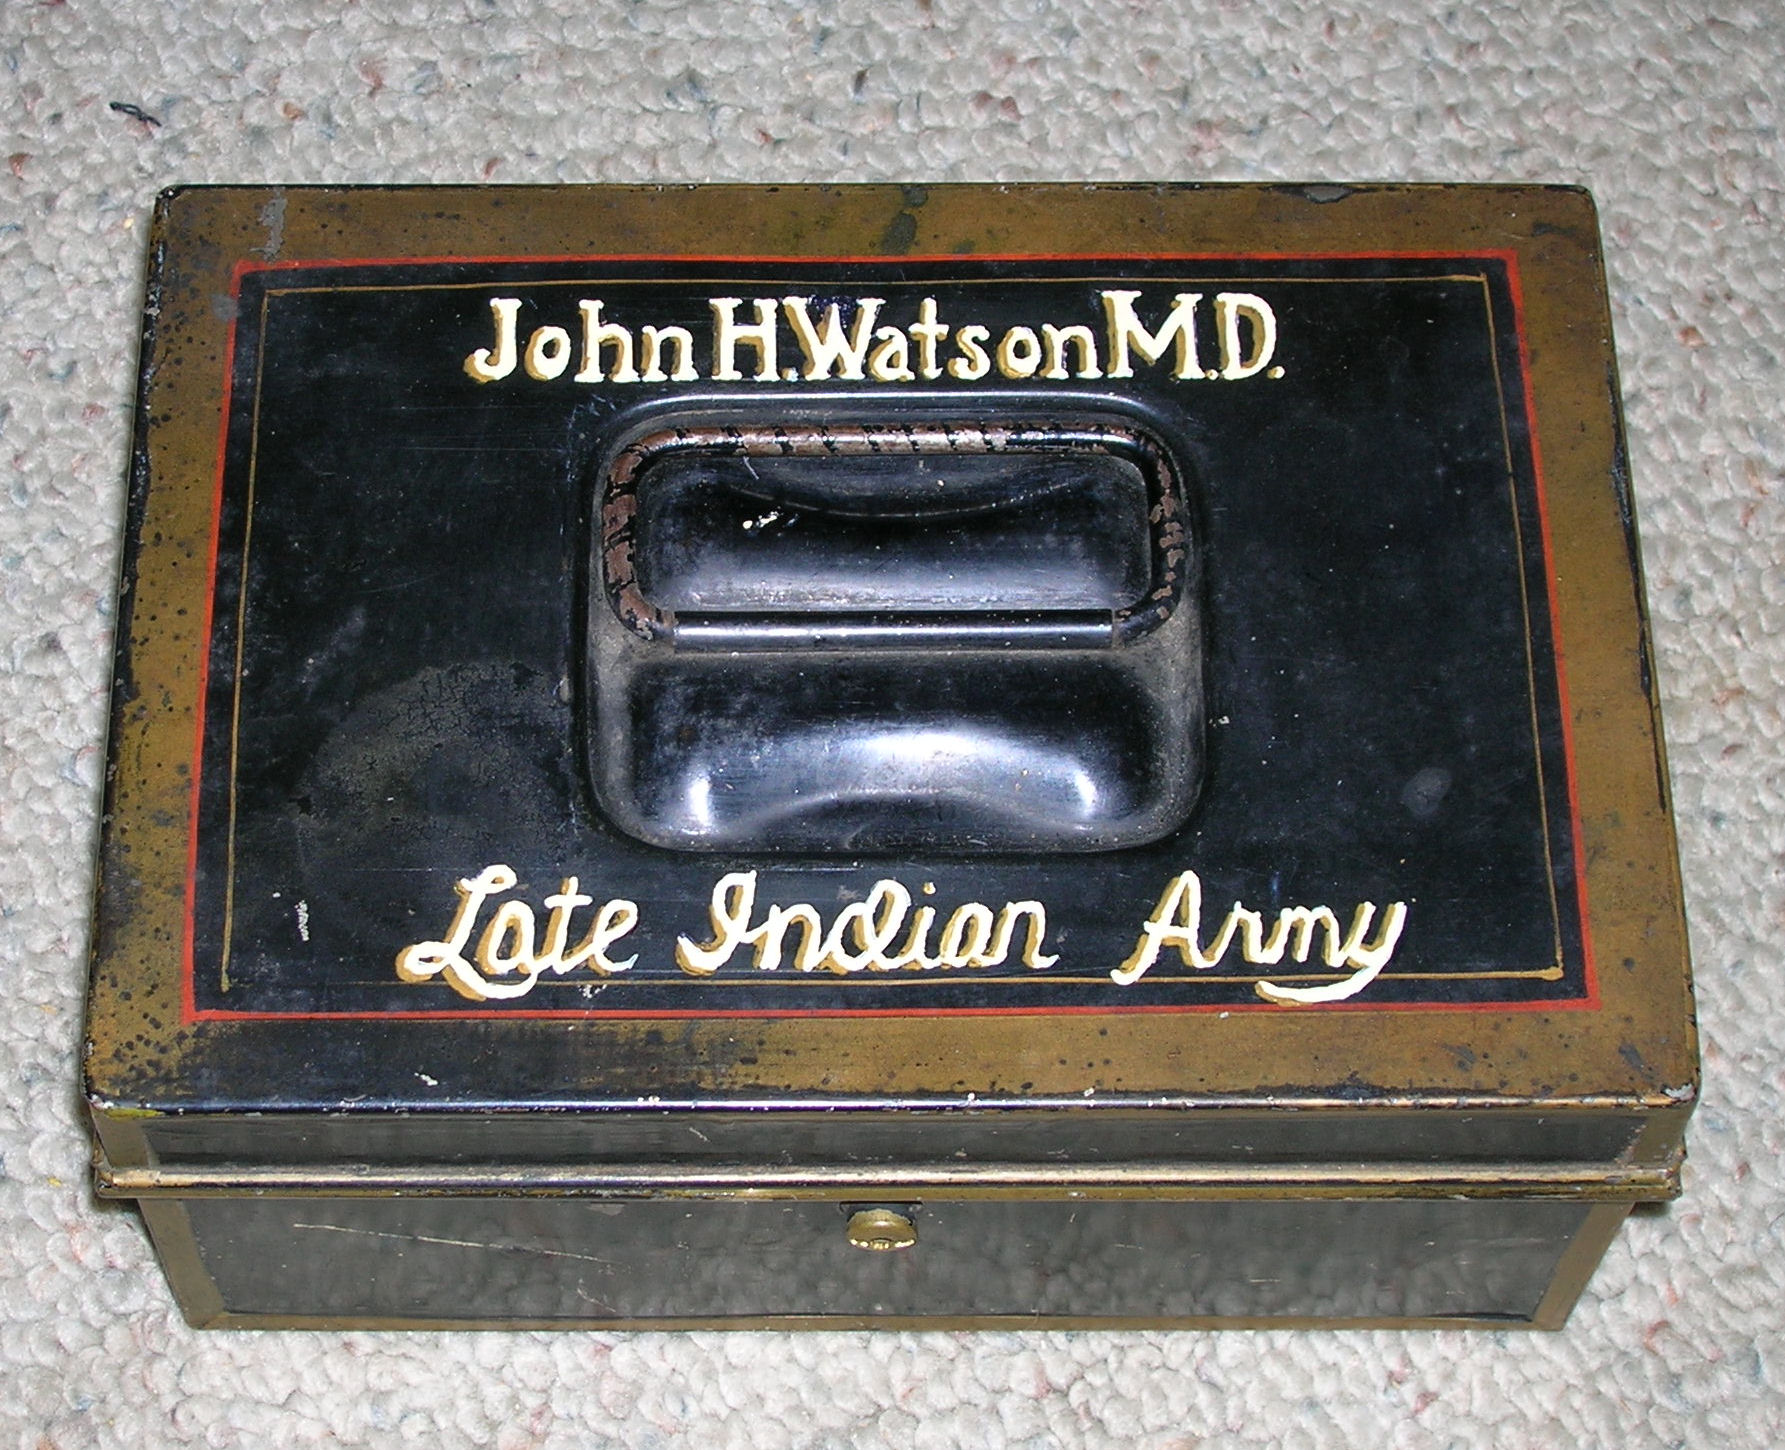 From Watson's Tin Box – The Illustrious Client